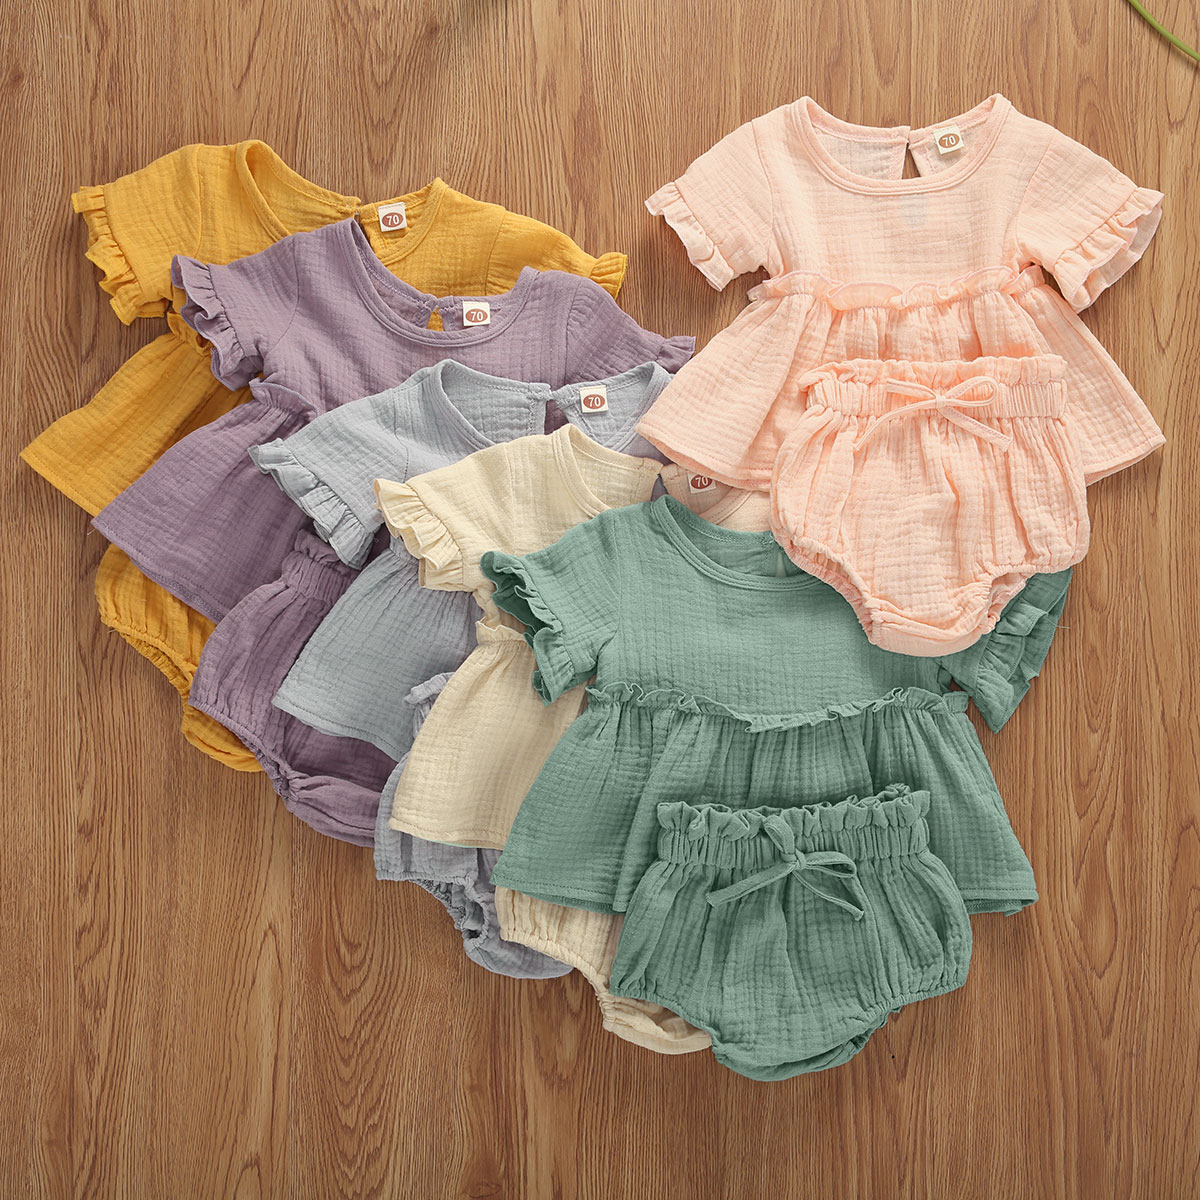 2020 Newborn Baby Girl Clothes Summer 2Pcs Sets Solid Color Outfit Ruffles Top Short Sleeve Tops+ Bow Bloosom Shorts Summer Set